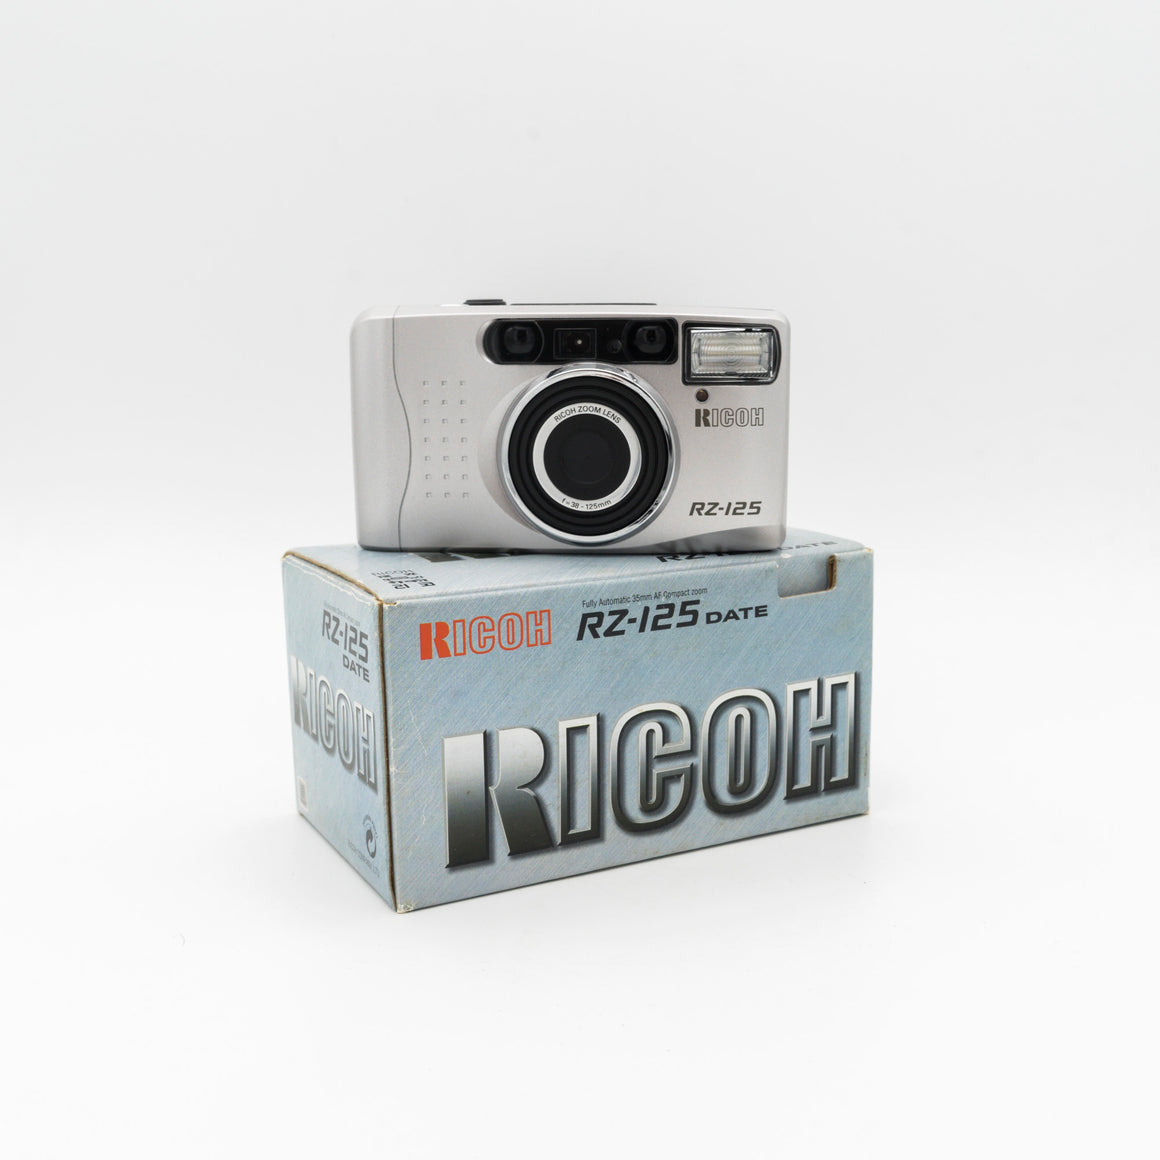 Rioch Rz-125 35mm Point and Shoot camera with 38-125mm